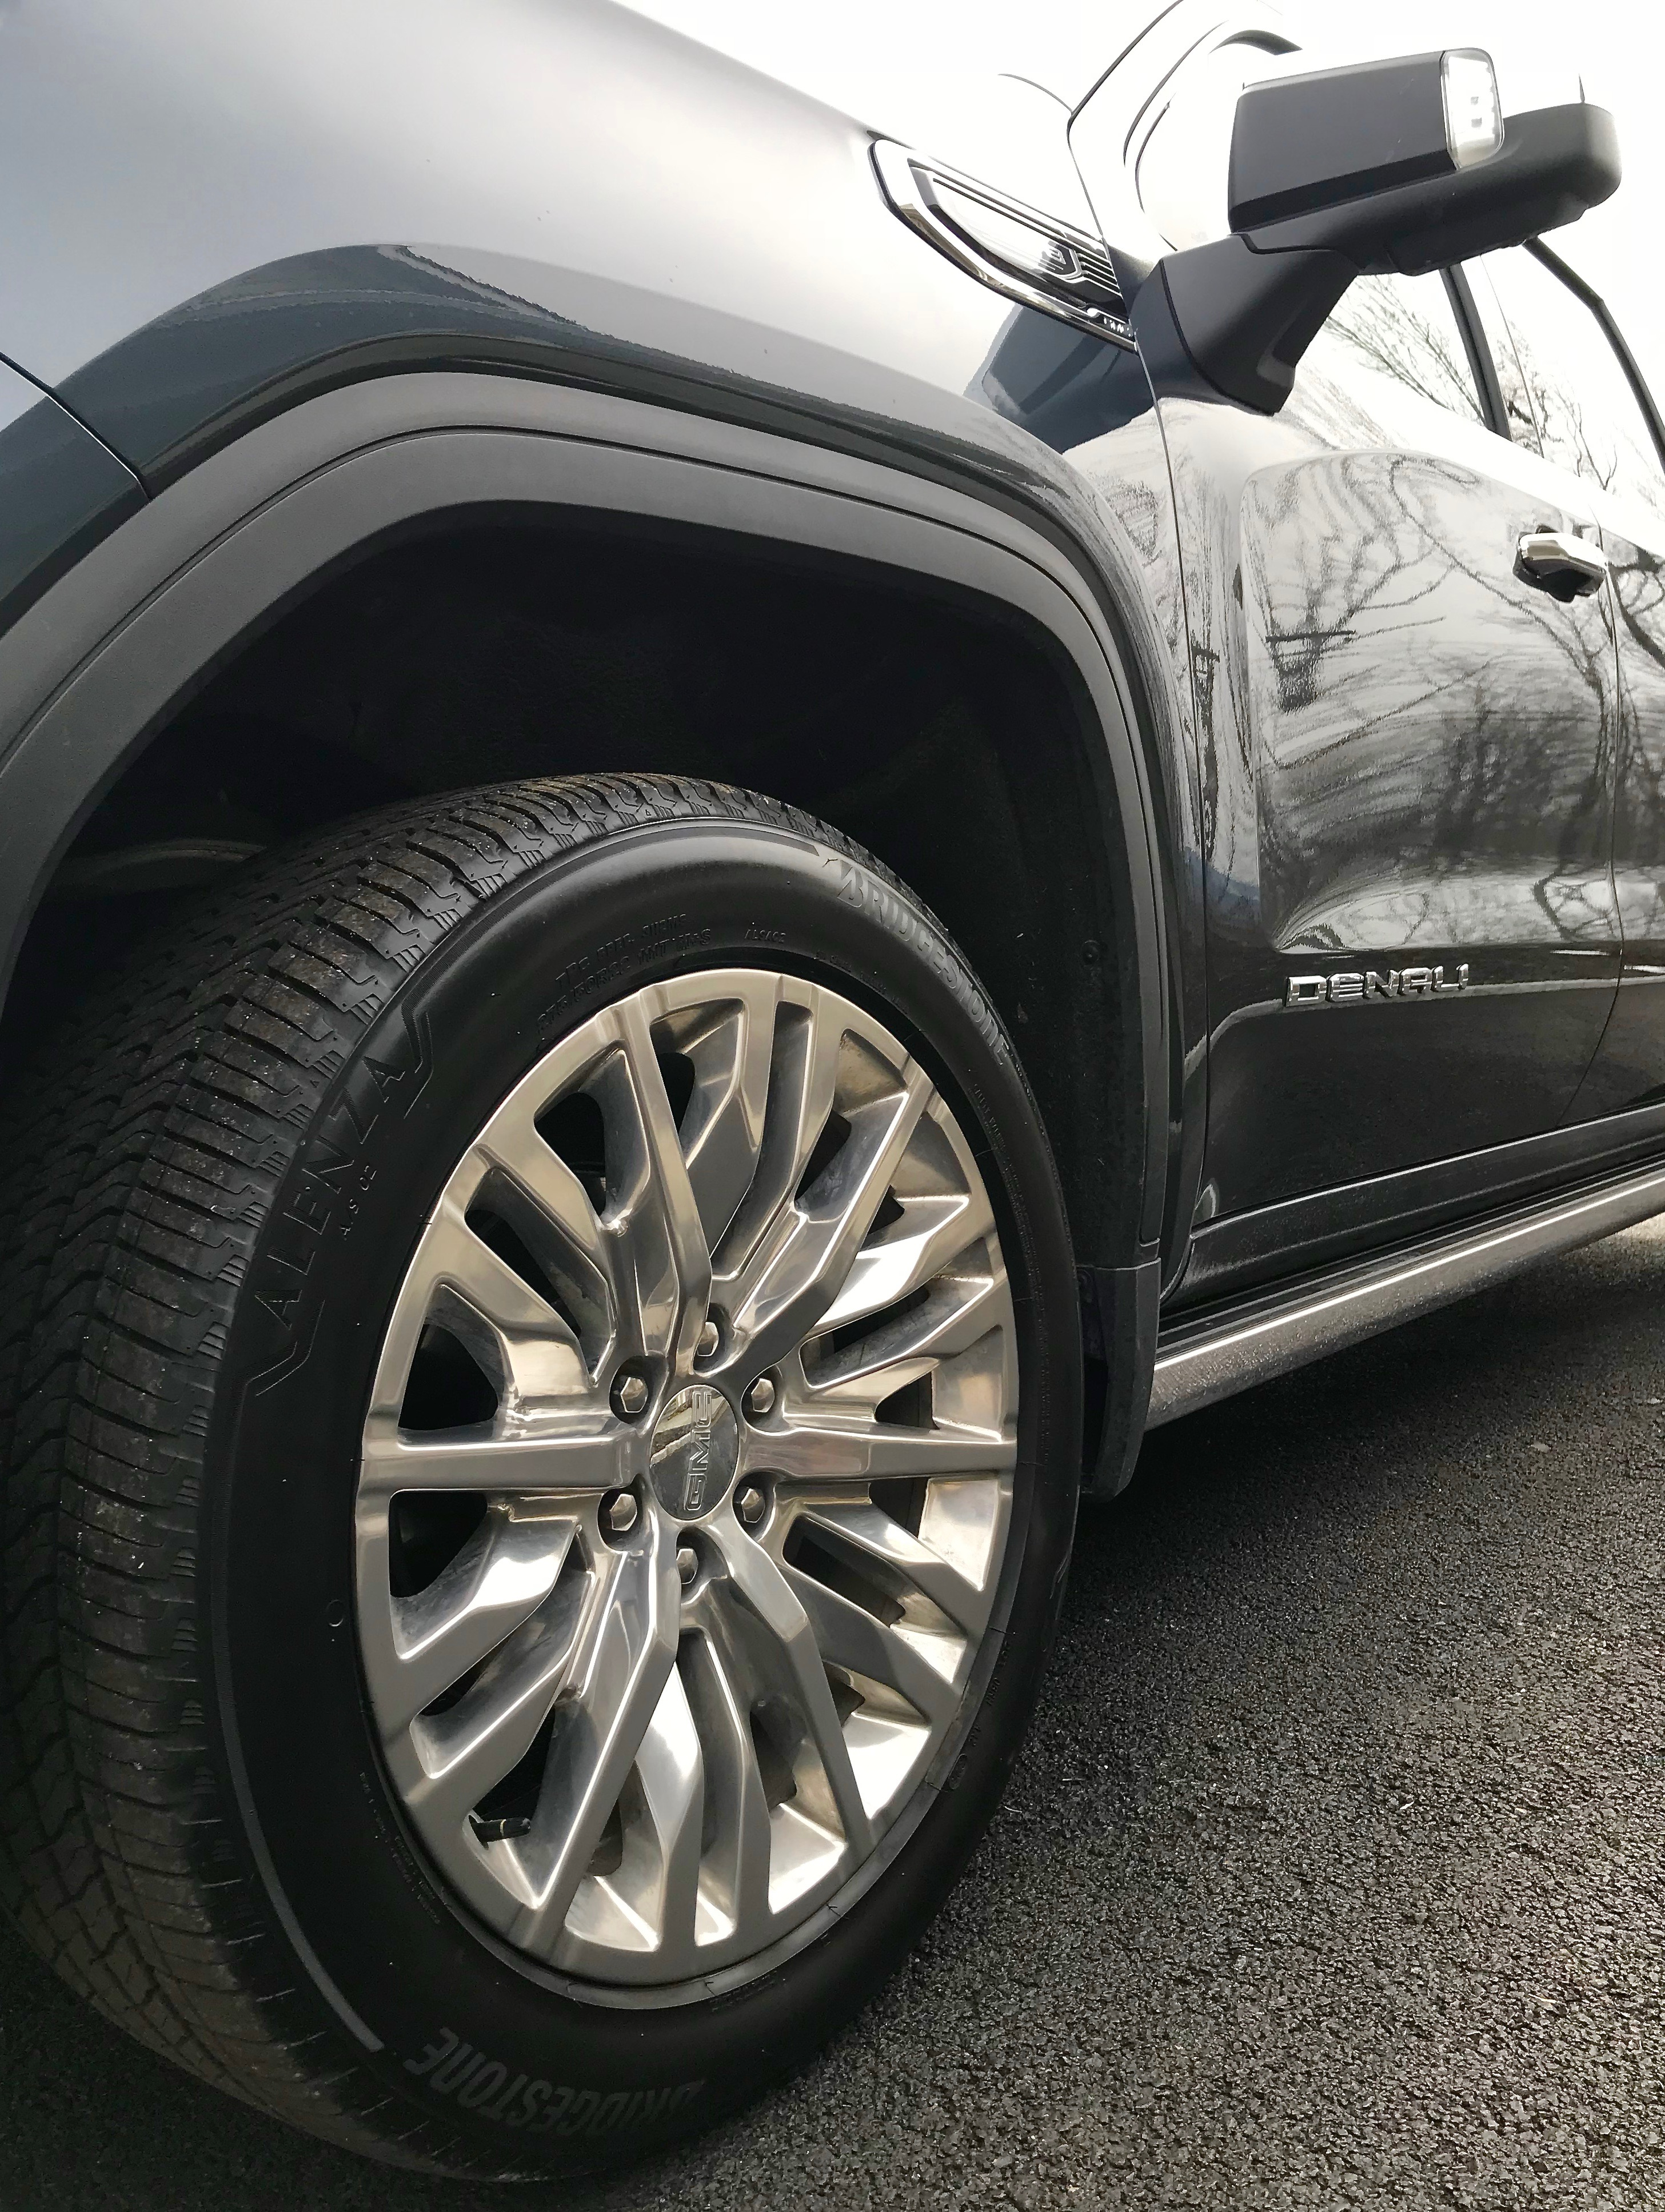 One of my favorite winter driving tips: performance tires with sculpted rims on GMC Sierra Denali - having the right tires is an important winter driving tip